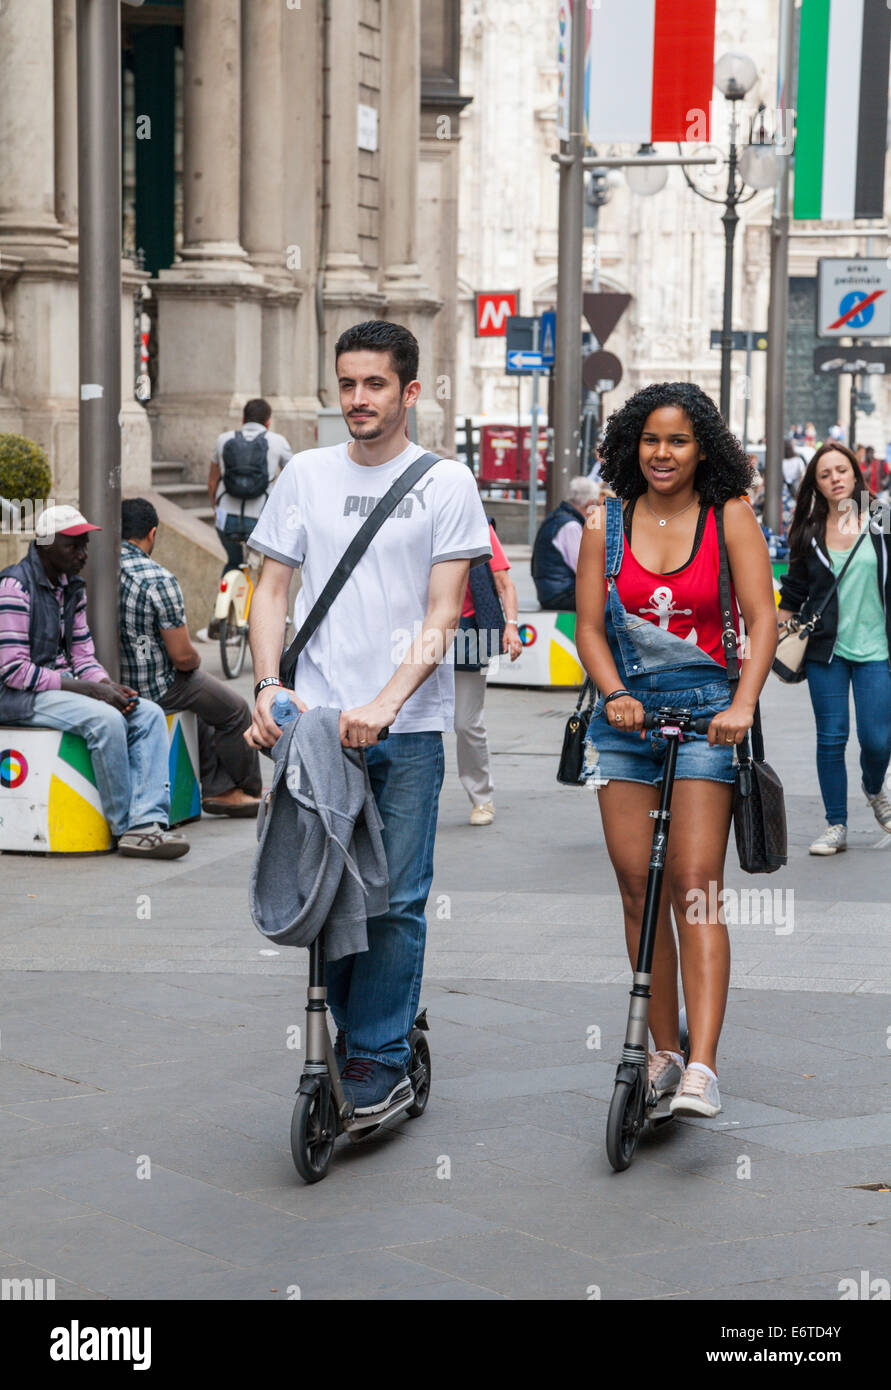 Couple on scooters in Milan, Italy - Stock Image